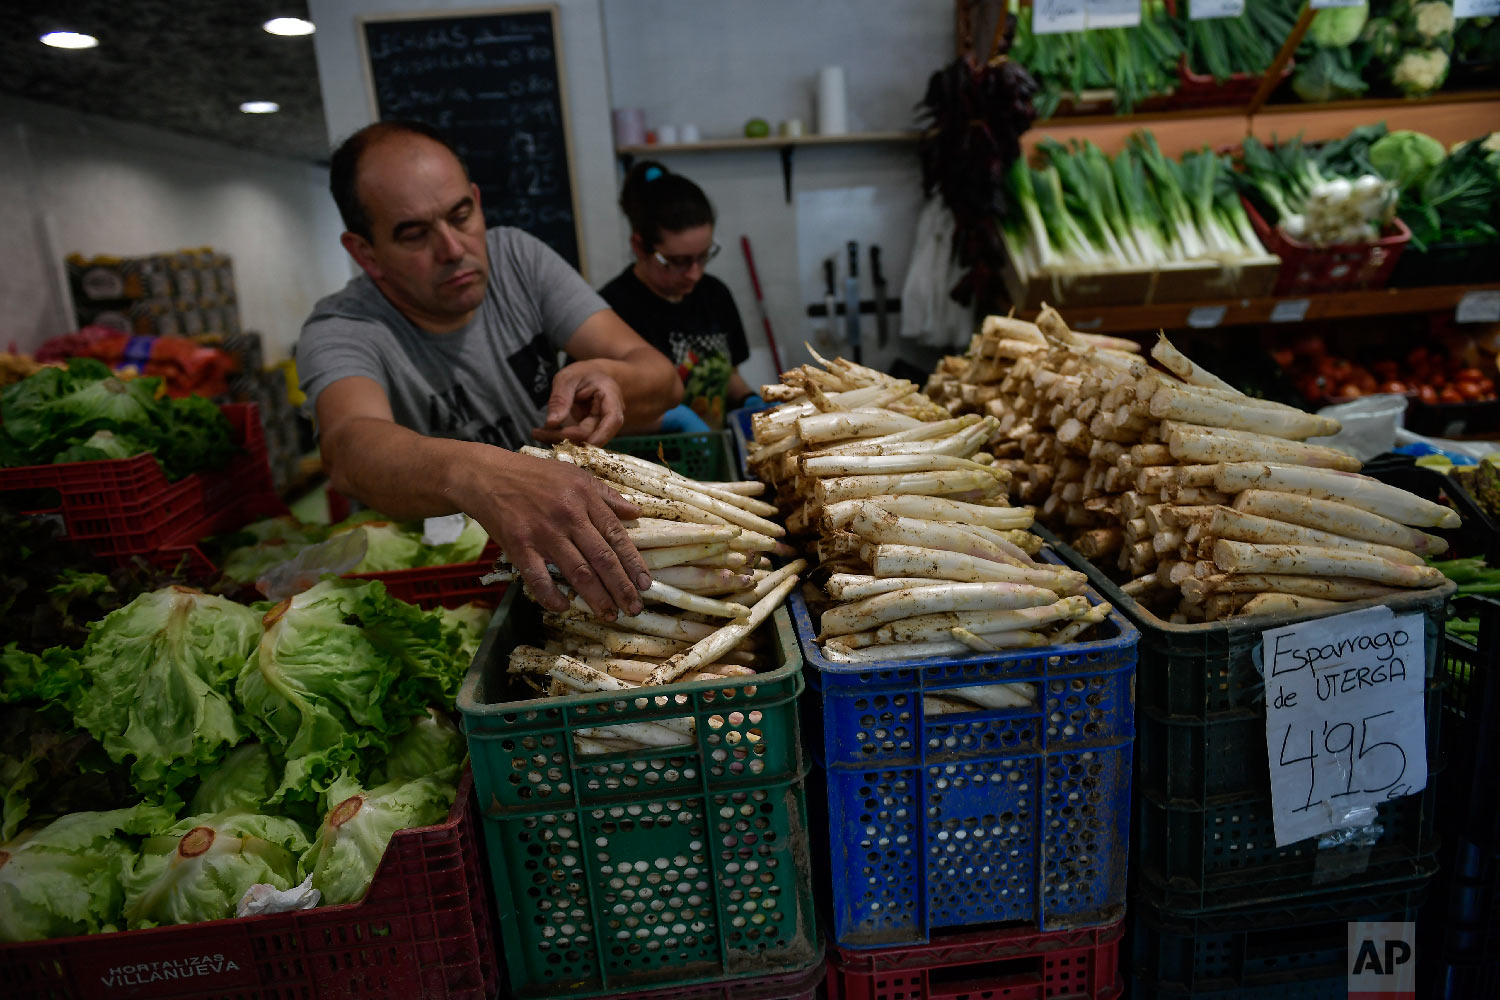 A trader organises white asparagus for customers at his store in Pamplona, northern Spain on Friday, June 1, 2018.(AP Photo/Alvaro Barrientos)